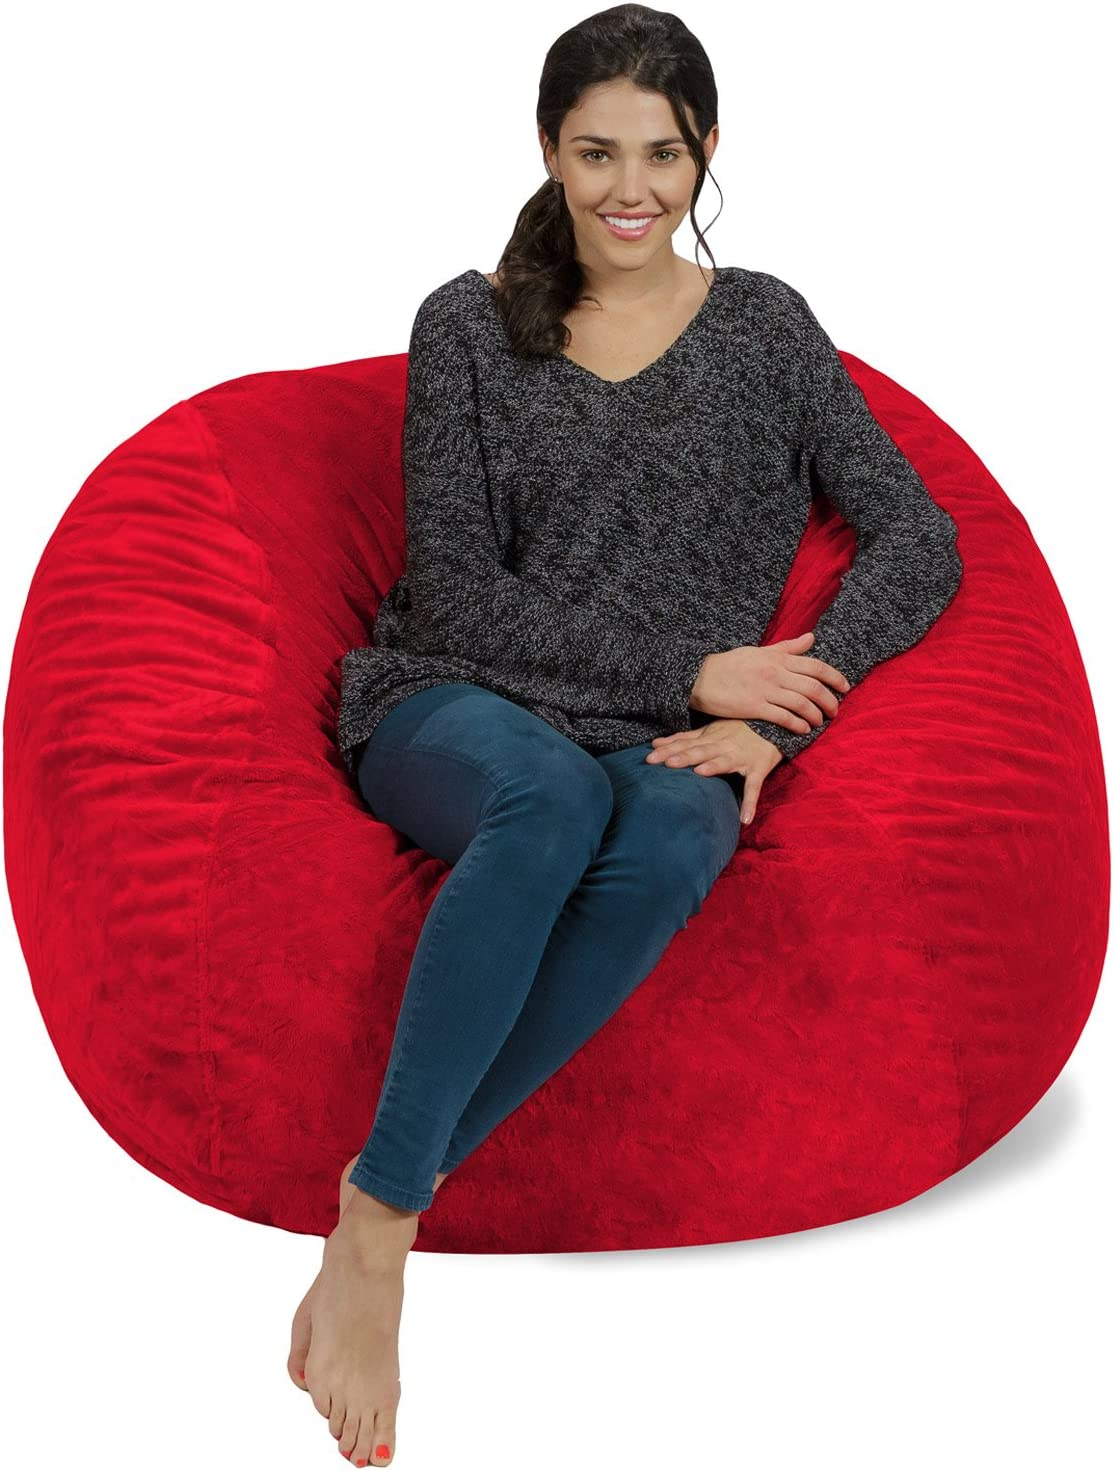 Chill Sack Bean Bag Chair: Giant 4' Memory Foam Furniture Bean Bag - Big Sofa with Soft Micro Fiber Cover - Red Furry